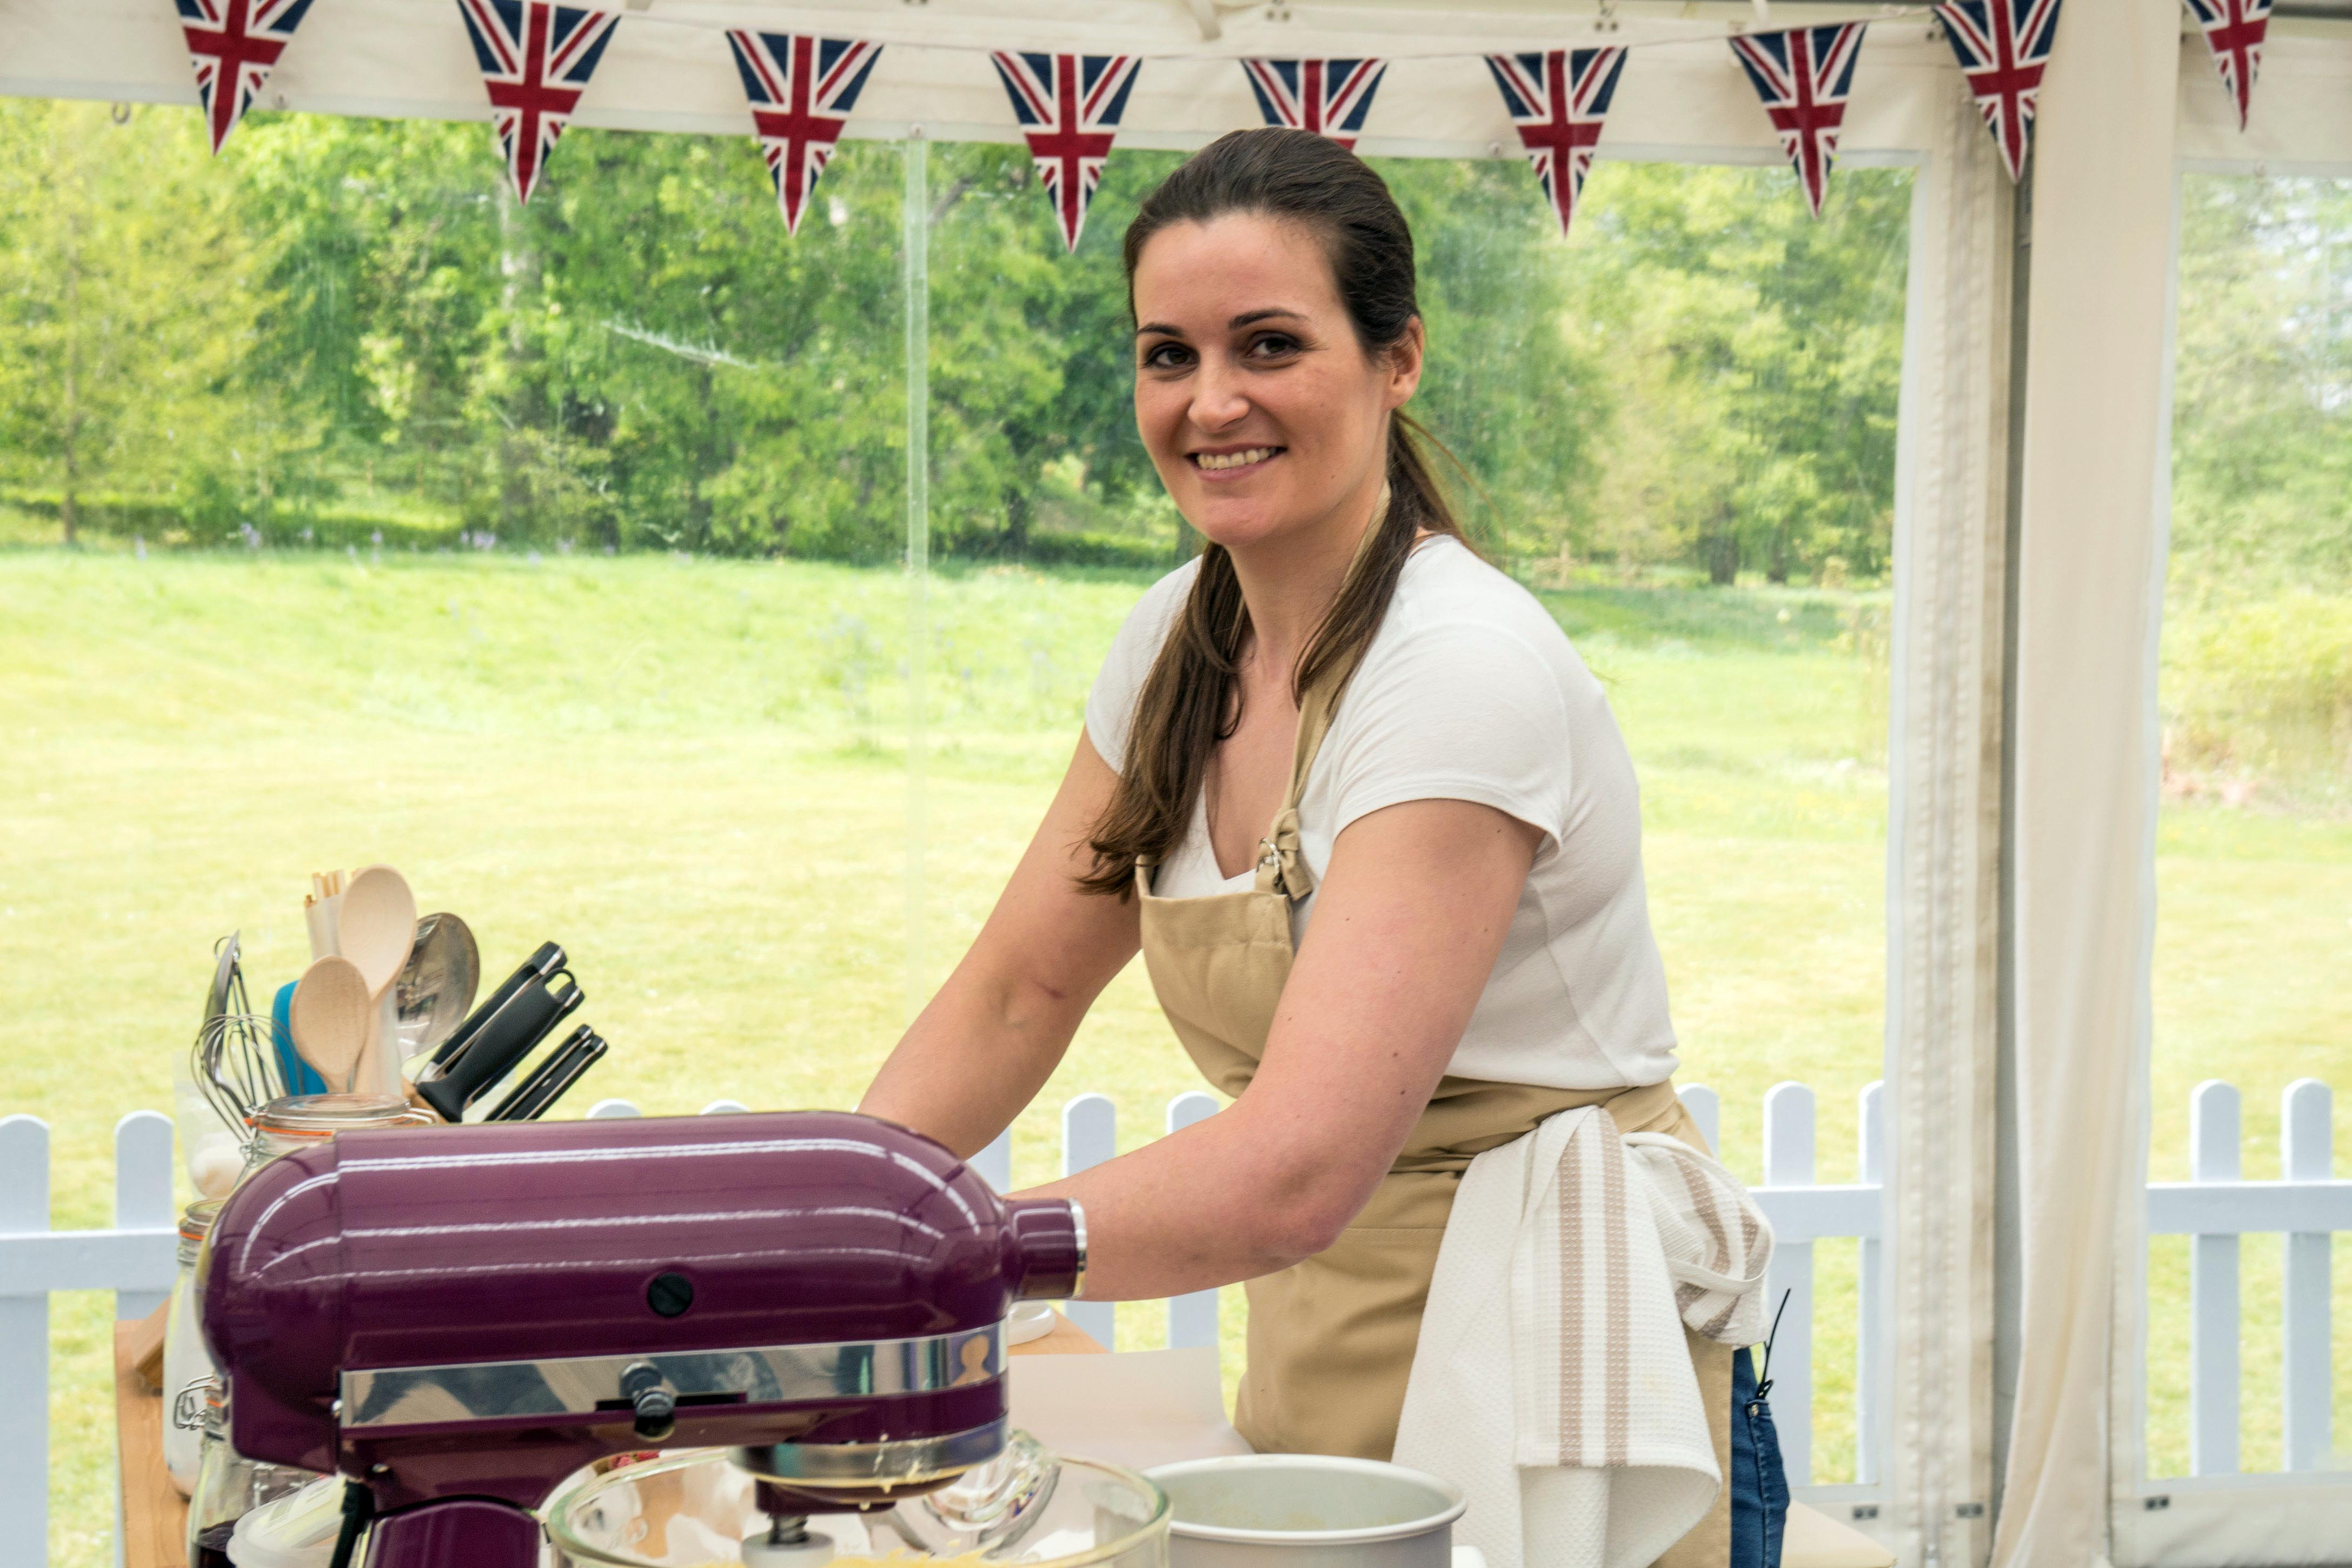 Sophie on Bake Off